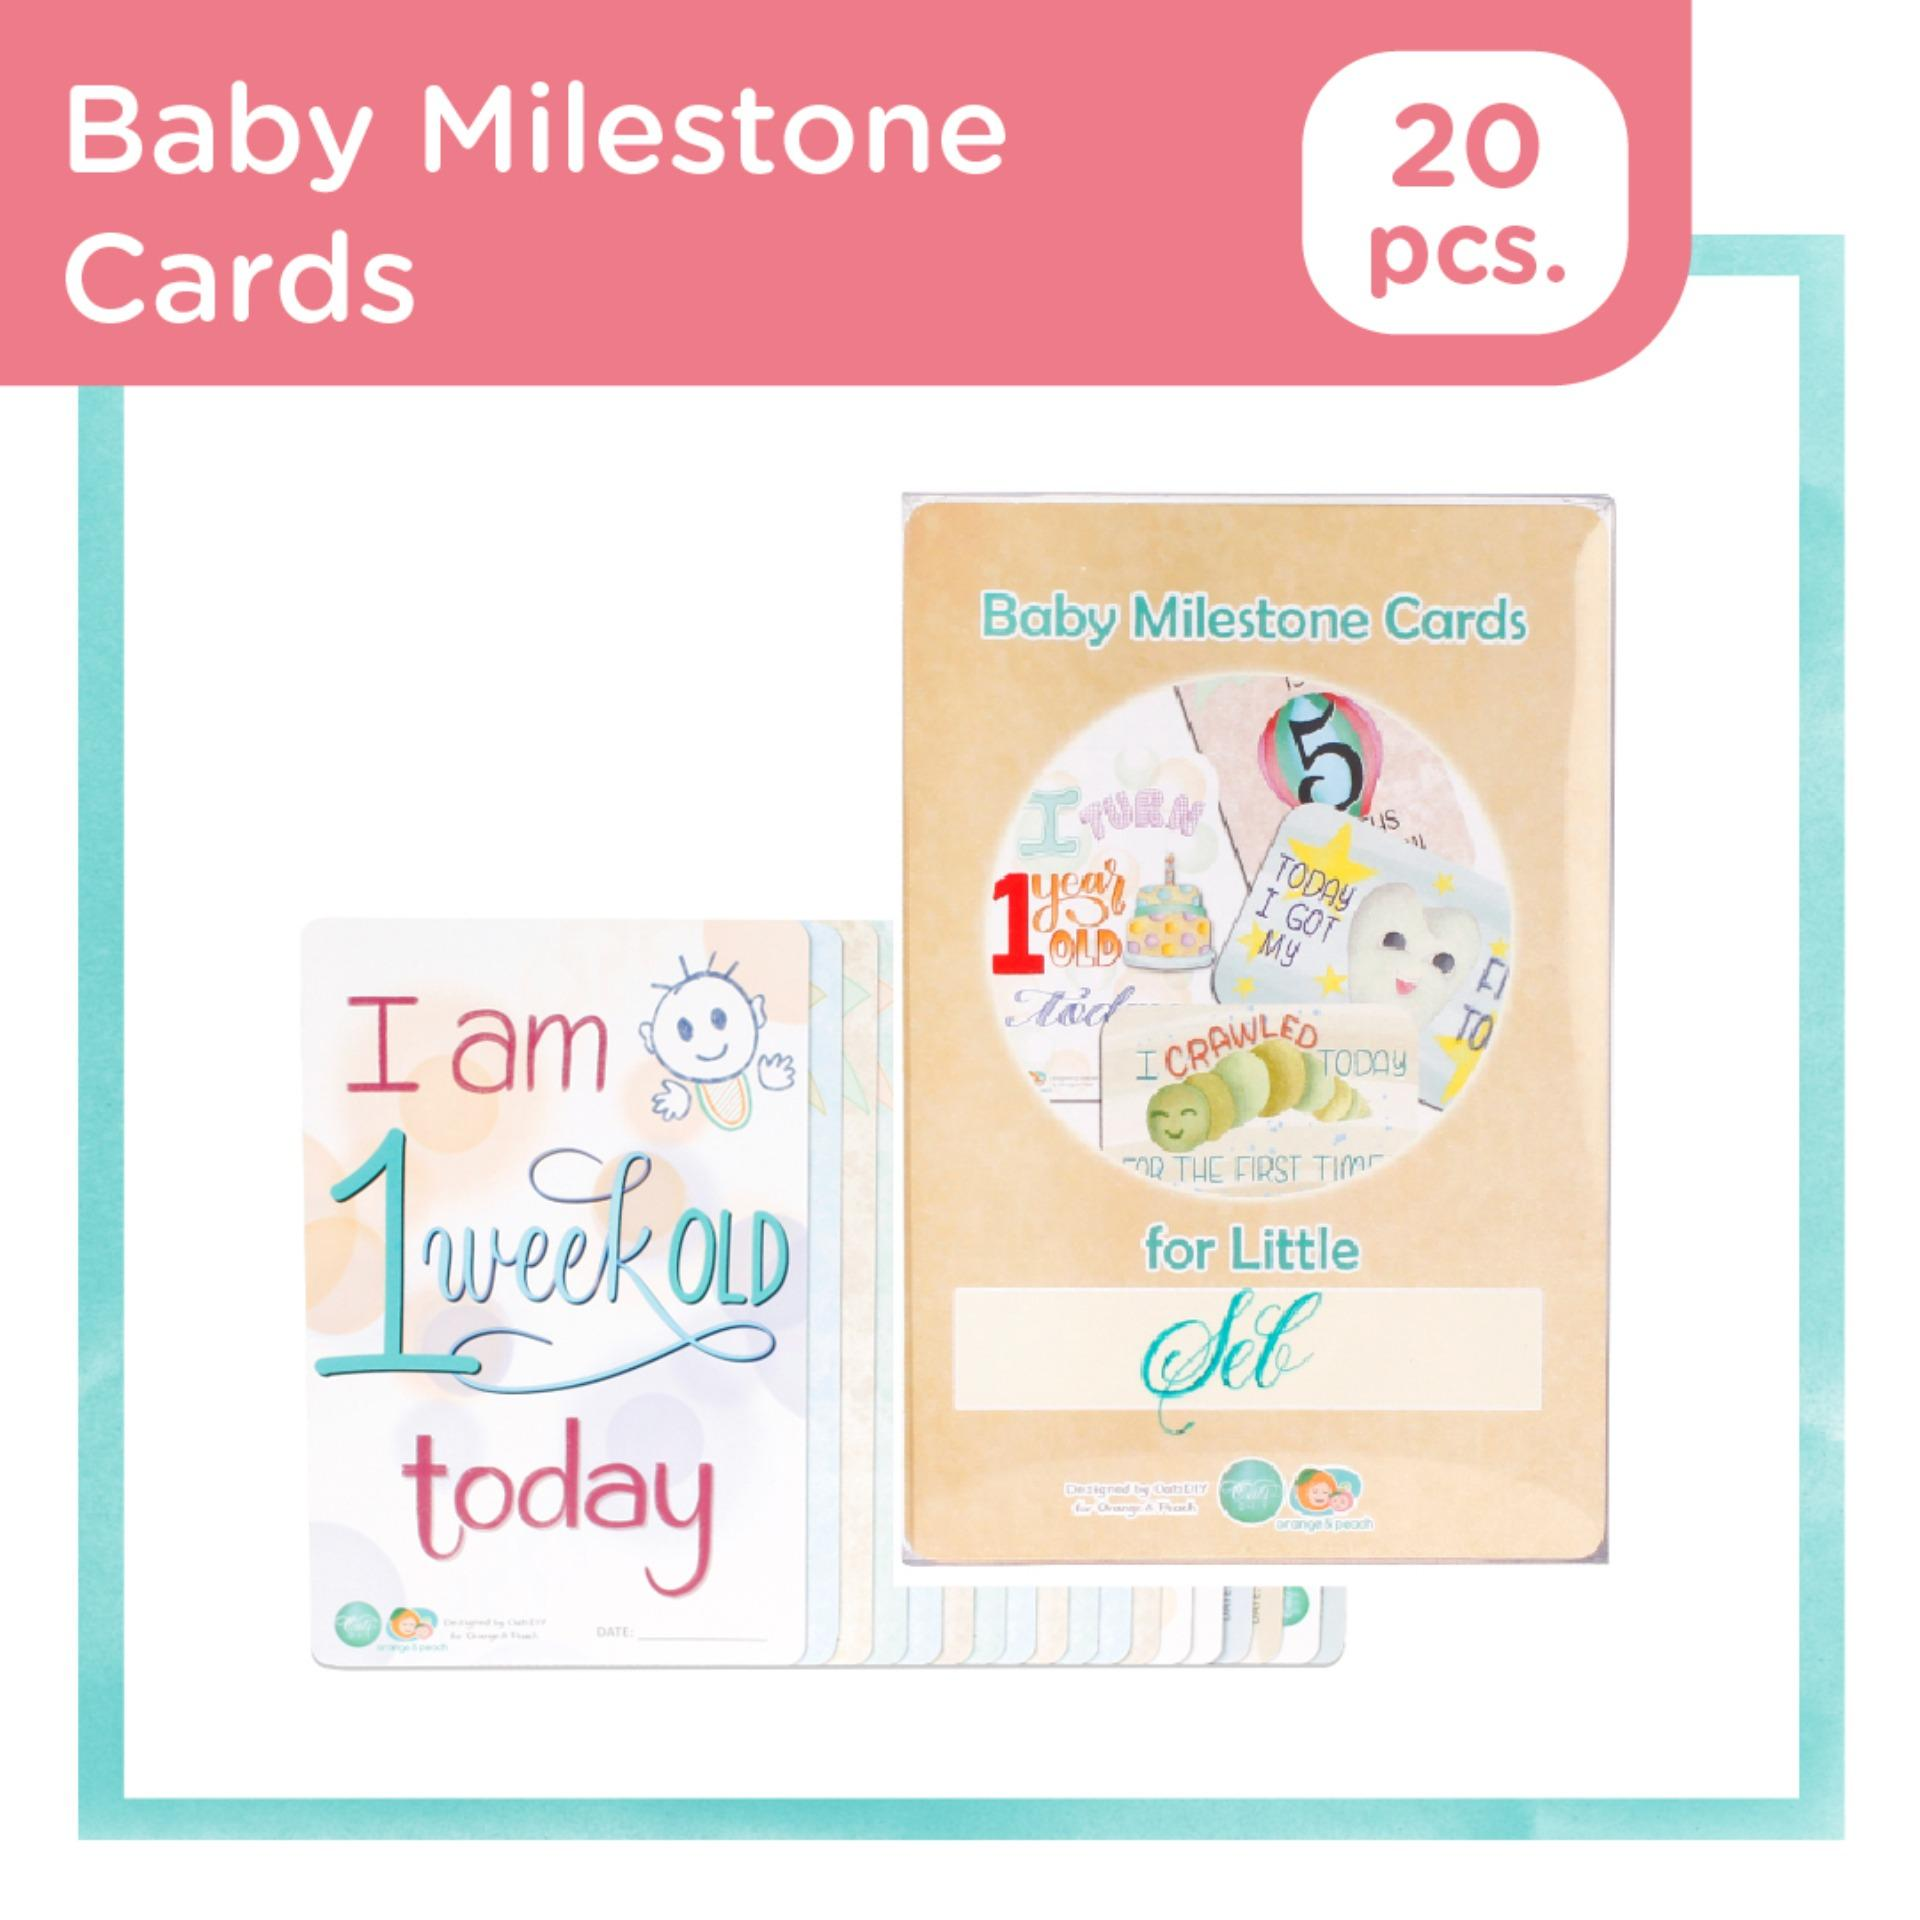 Gifts & Keepsakes 'Baby's 1st Year' Milestone Cards in a Gender Neutral Cotton Pouch A Unique and Adorable Keepsake for Parents to Capture Their Child's Precious Memories!